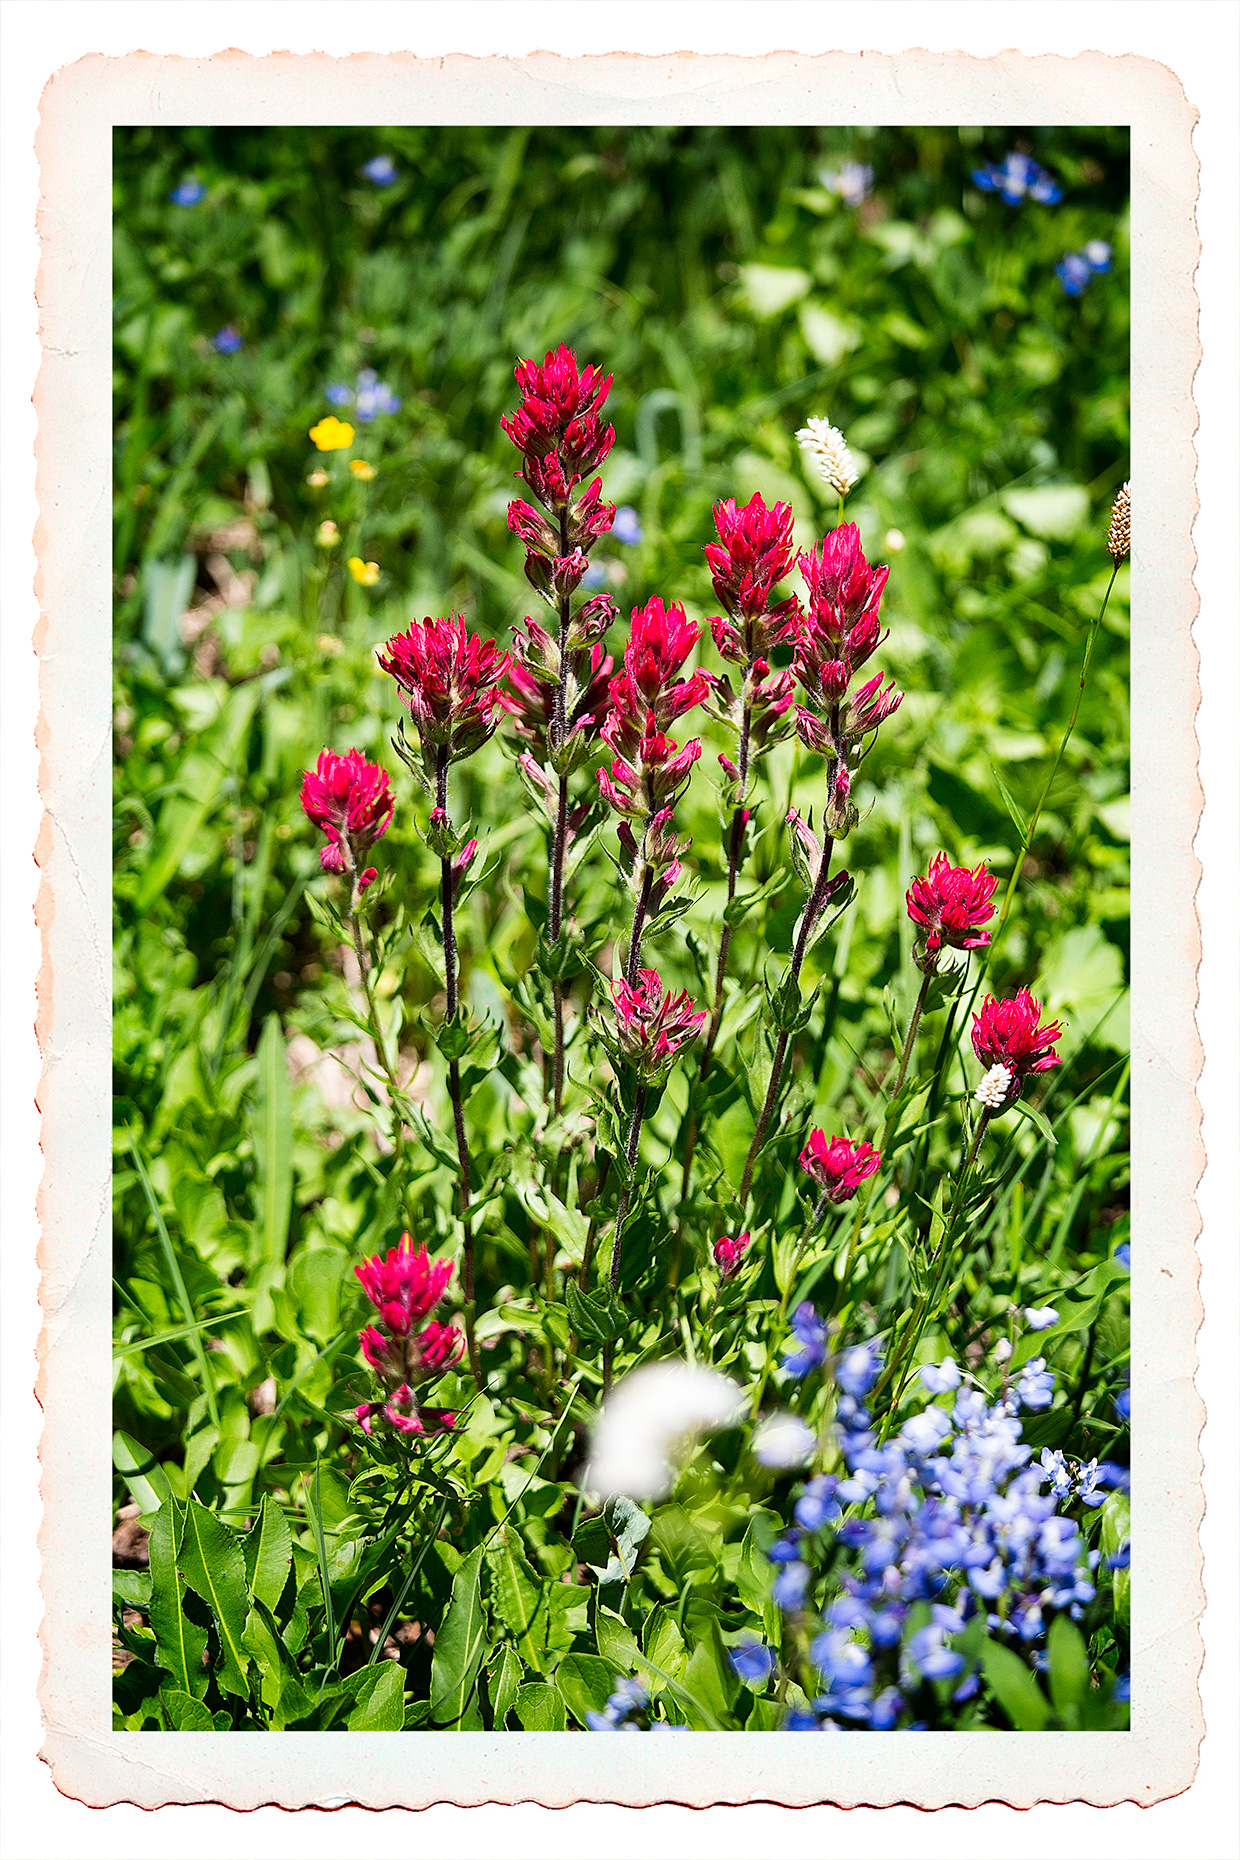 ... Is A Garden Filled Knee Deep With Fresh, Lovely Flowers Of Every Hue,  The Most Luxuriant And The Most Extravagantly Beautiful Of All The Alpine  Gardens ...